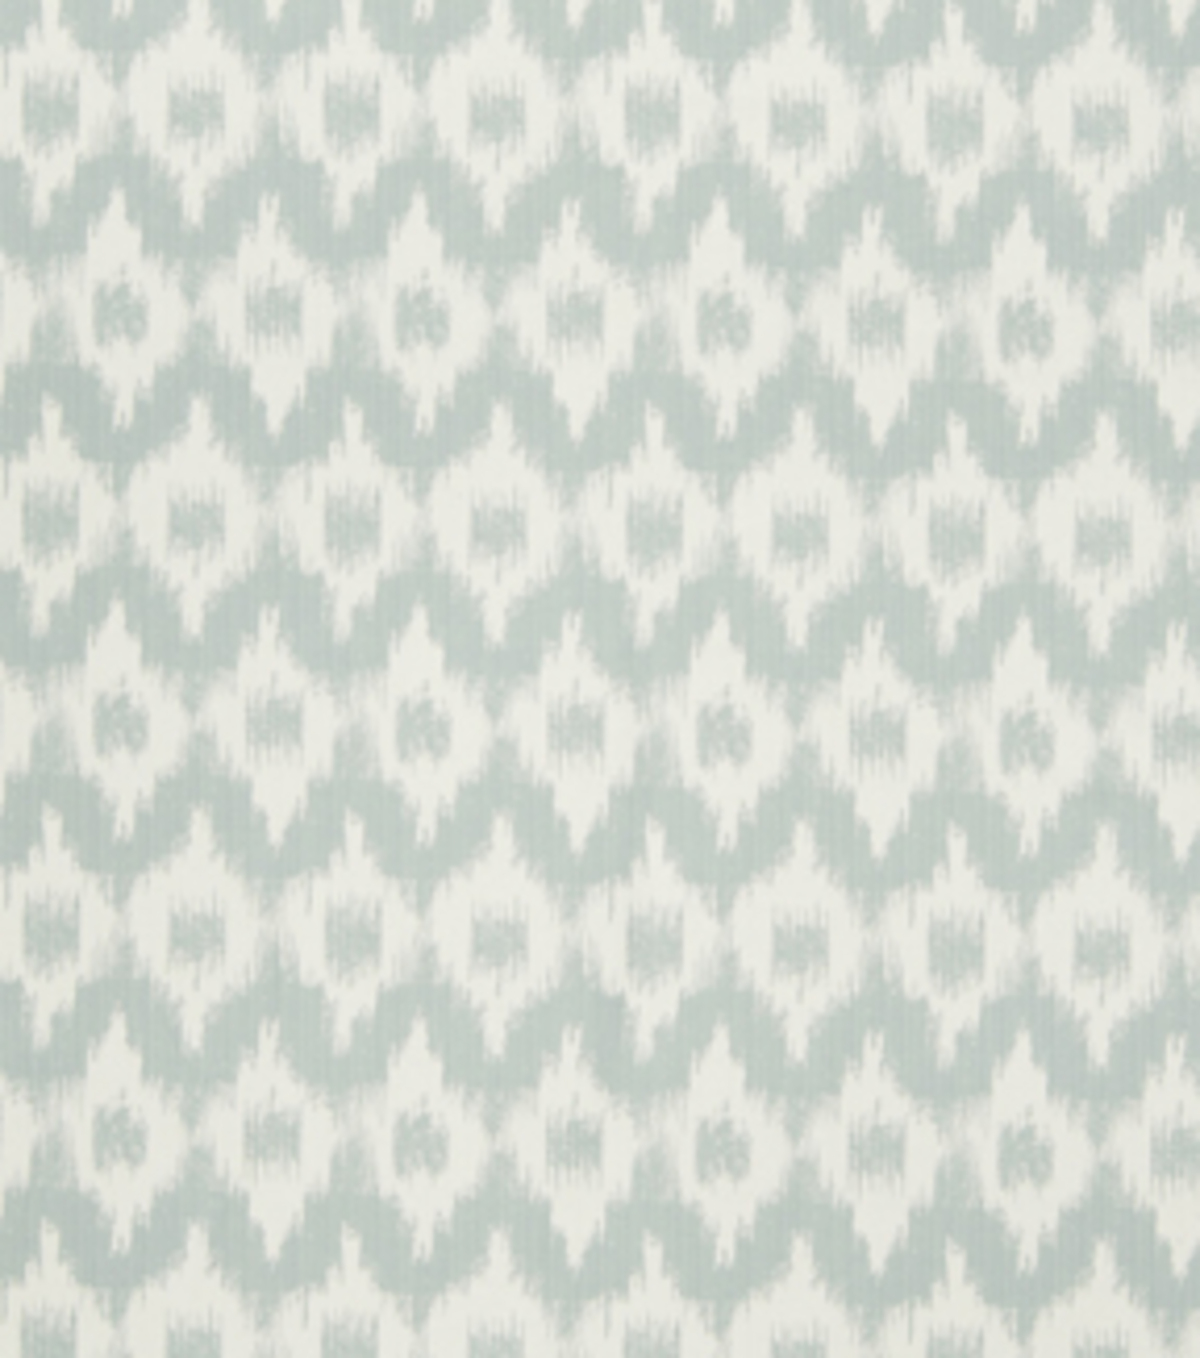 Home Decor 8\u0022x8\u0022 Fabric Swatch-French General Cecilia La Mer